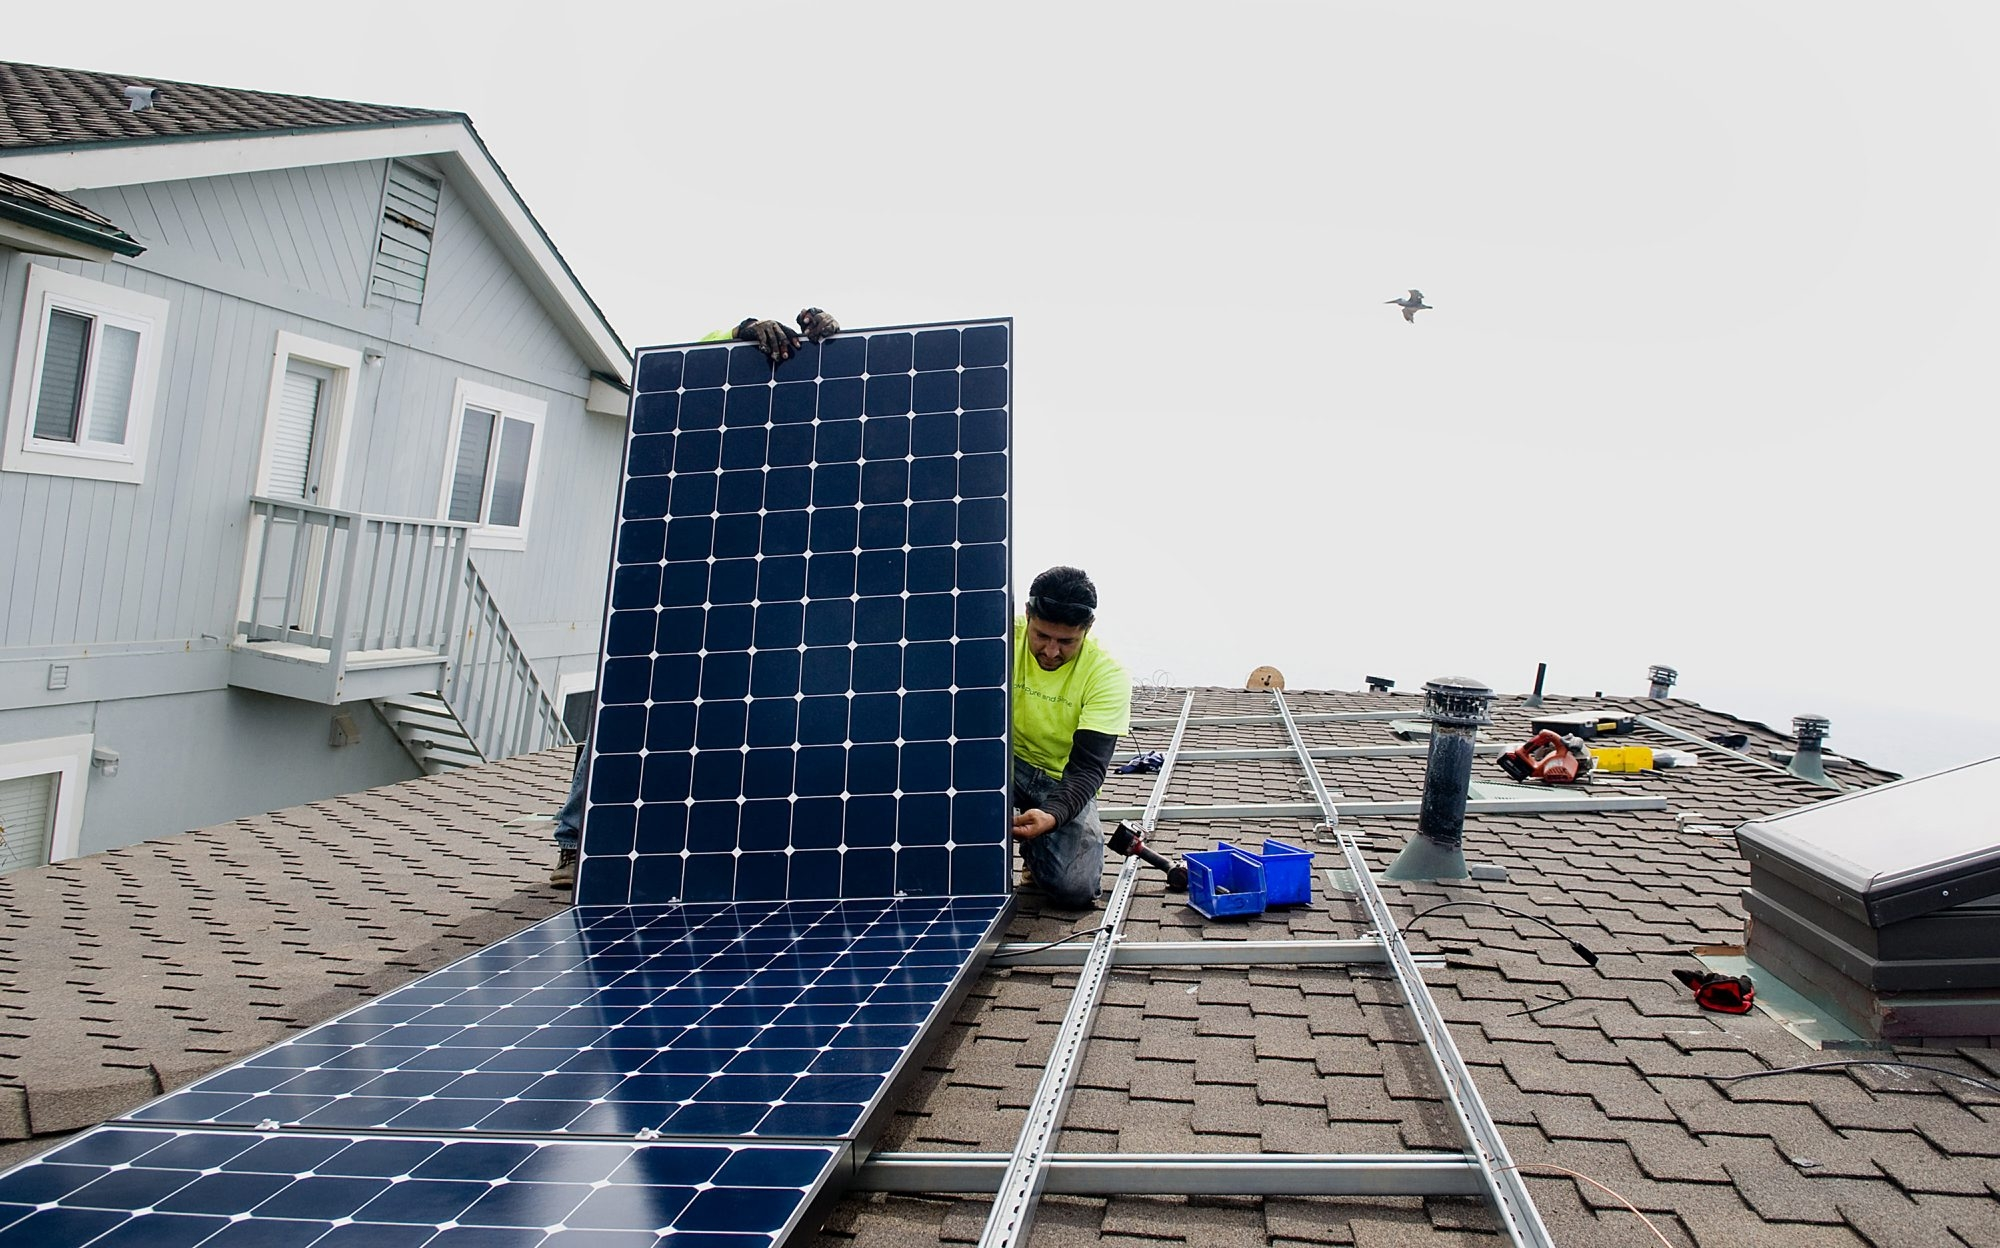 Stellar Solar installer Juan Moedano positions a solar panel during installation at a home in Encinitas, Calif. Shopping for solar power systems can be a daunting task for consumers.